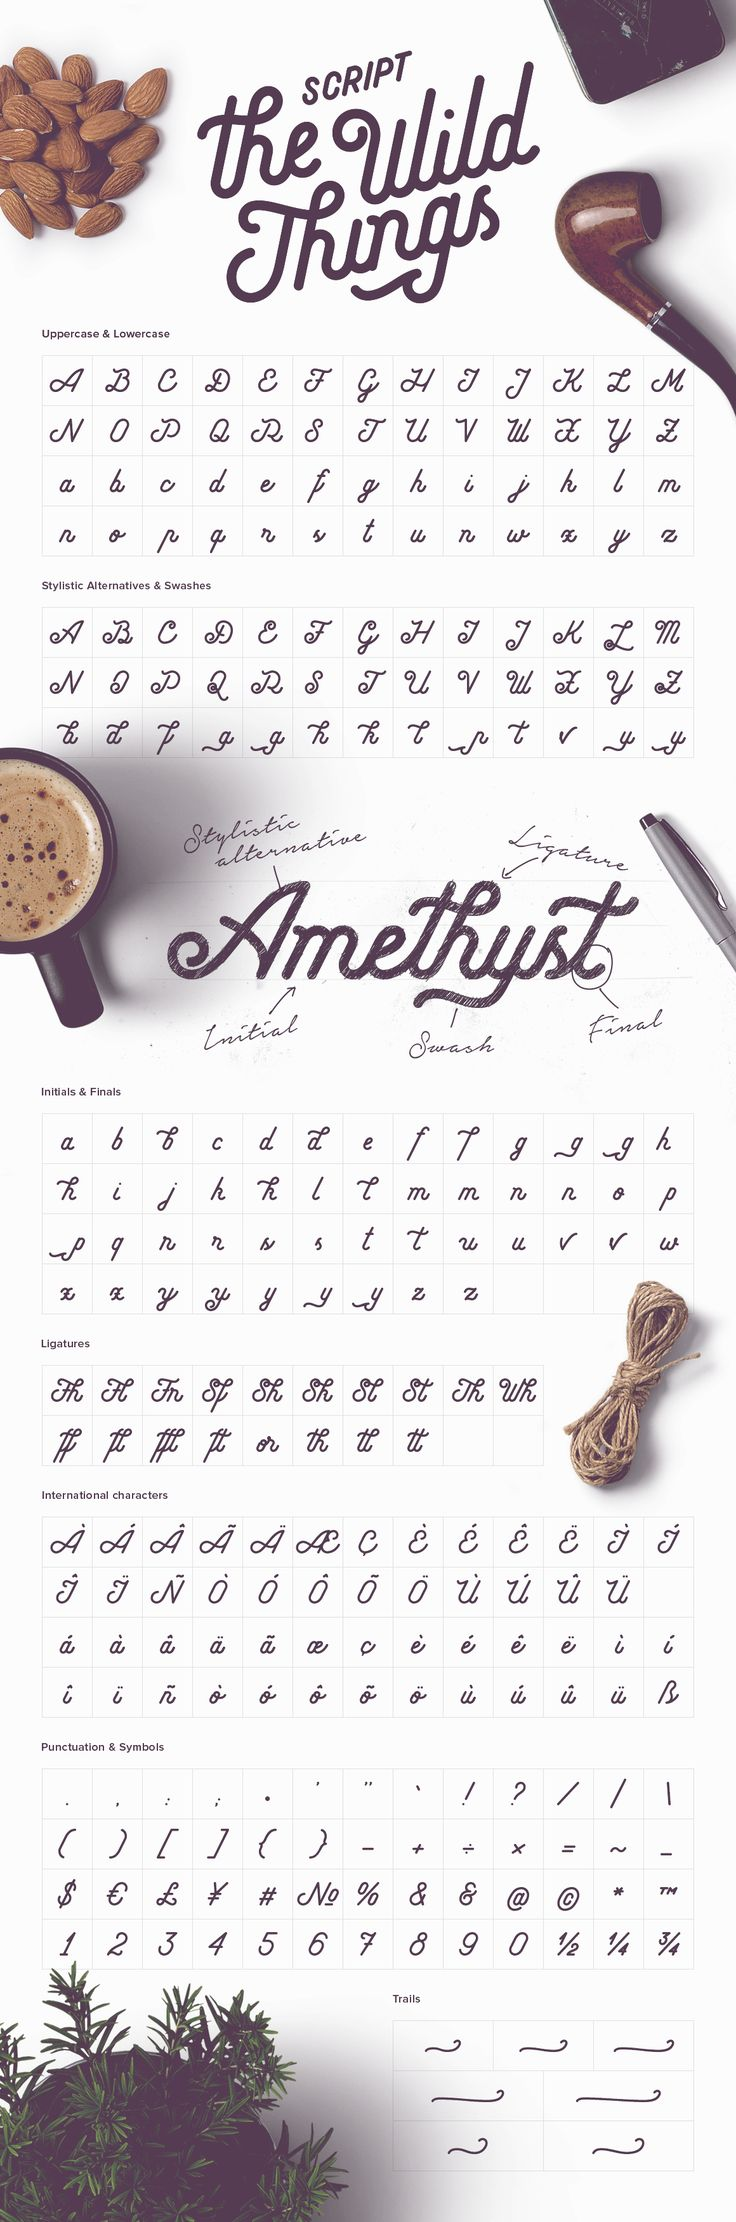 The Wild Things Script Font Alphabet, handwritten with flourishes and tails #typography #design #lettering Download: https://creativemarket.com/victorbarac/564047-The-Wild-Things/?u=nexion